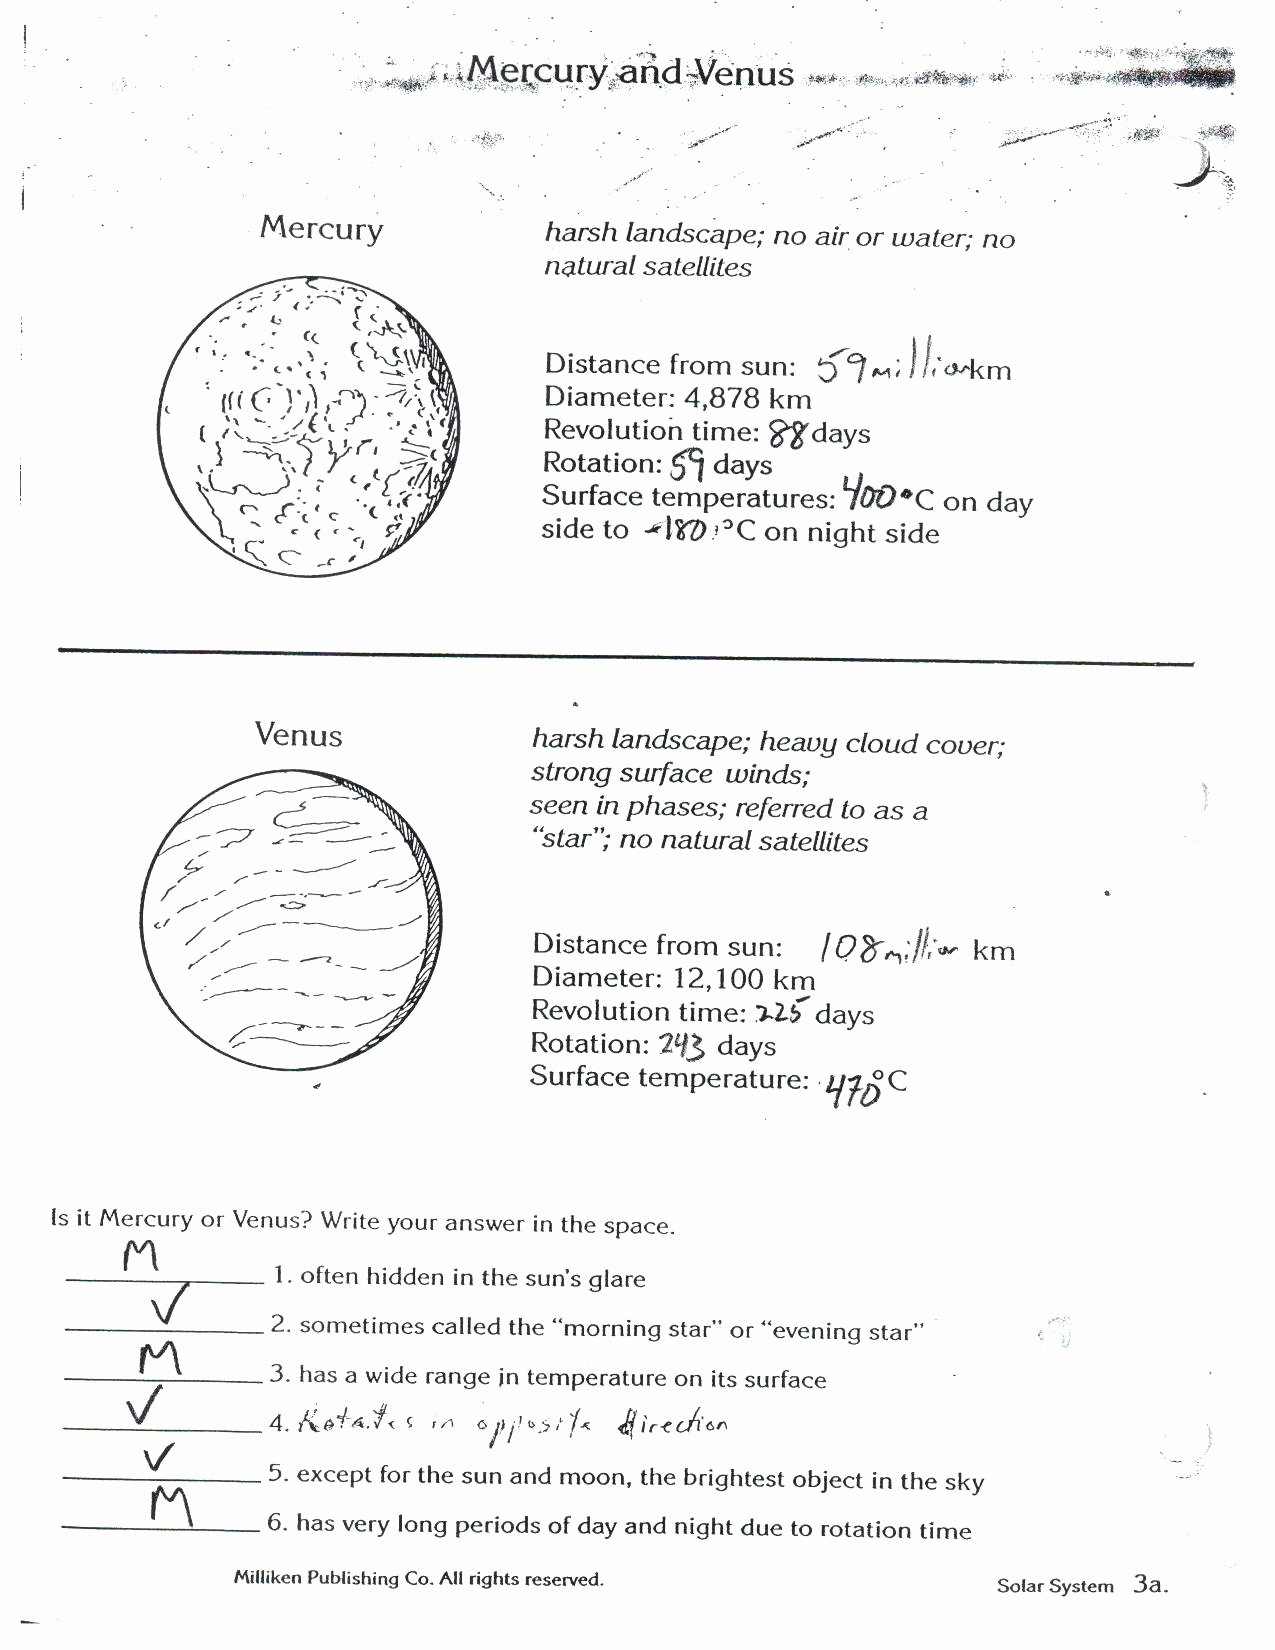 Water Cycle Worksheet Answer Key Unique Water Cycle Worksheet Answer Key the Best Worksheets Image